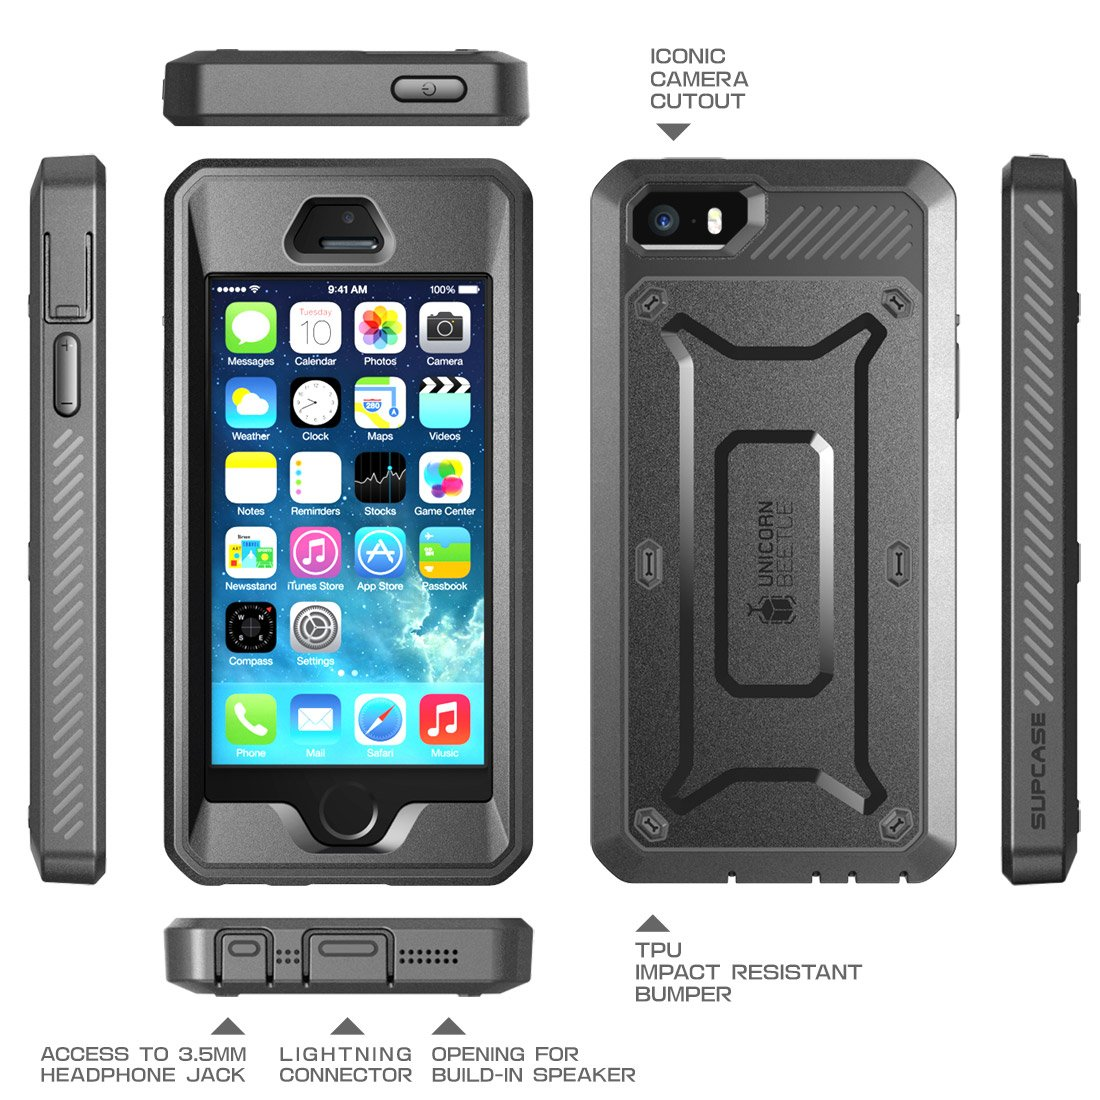 reputable site 80f74 6d660 iPhone SE Case, SUPCASE Full-body Rugged Holster Case with Built-in Screen  Protector for Apple iPhone SE (2016 Release/Compatible with iPhone 5S/5),  ...